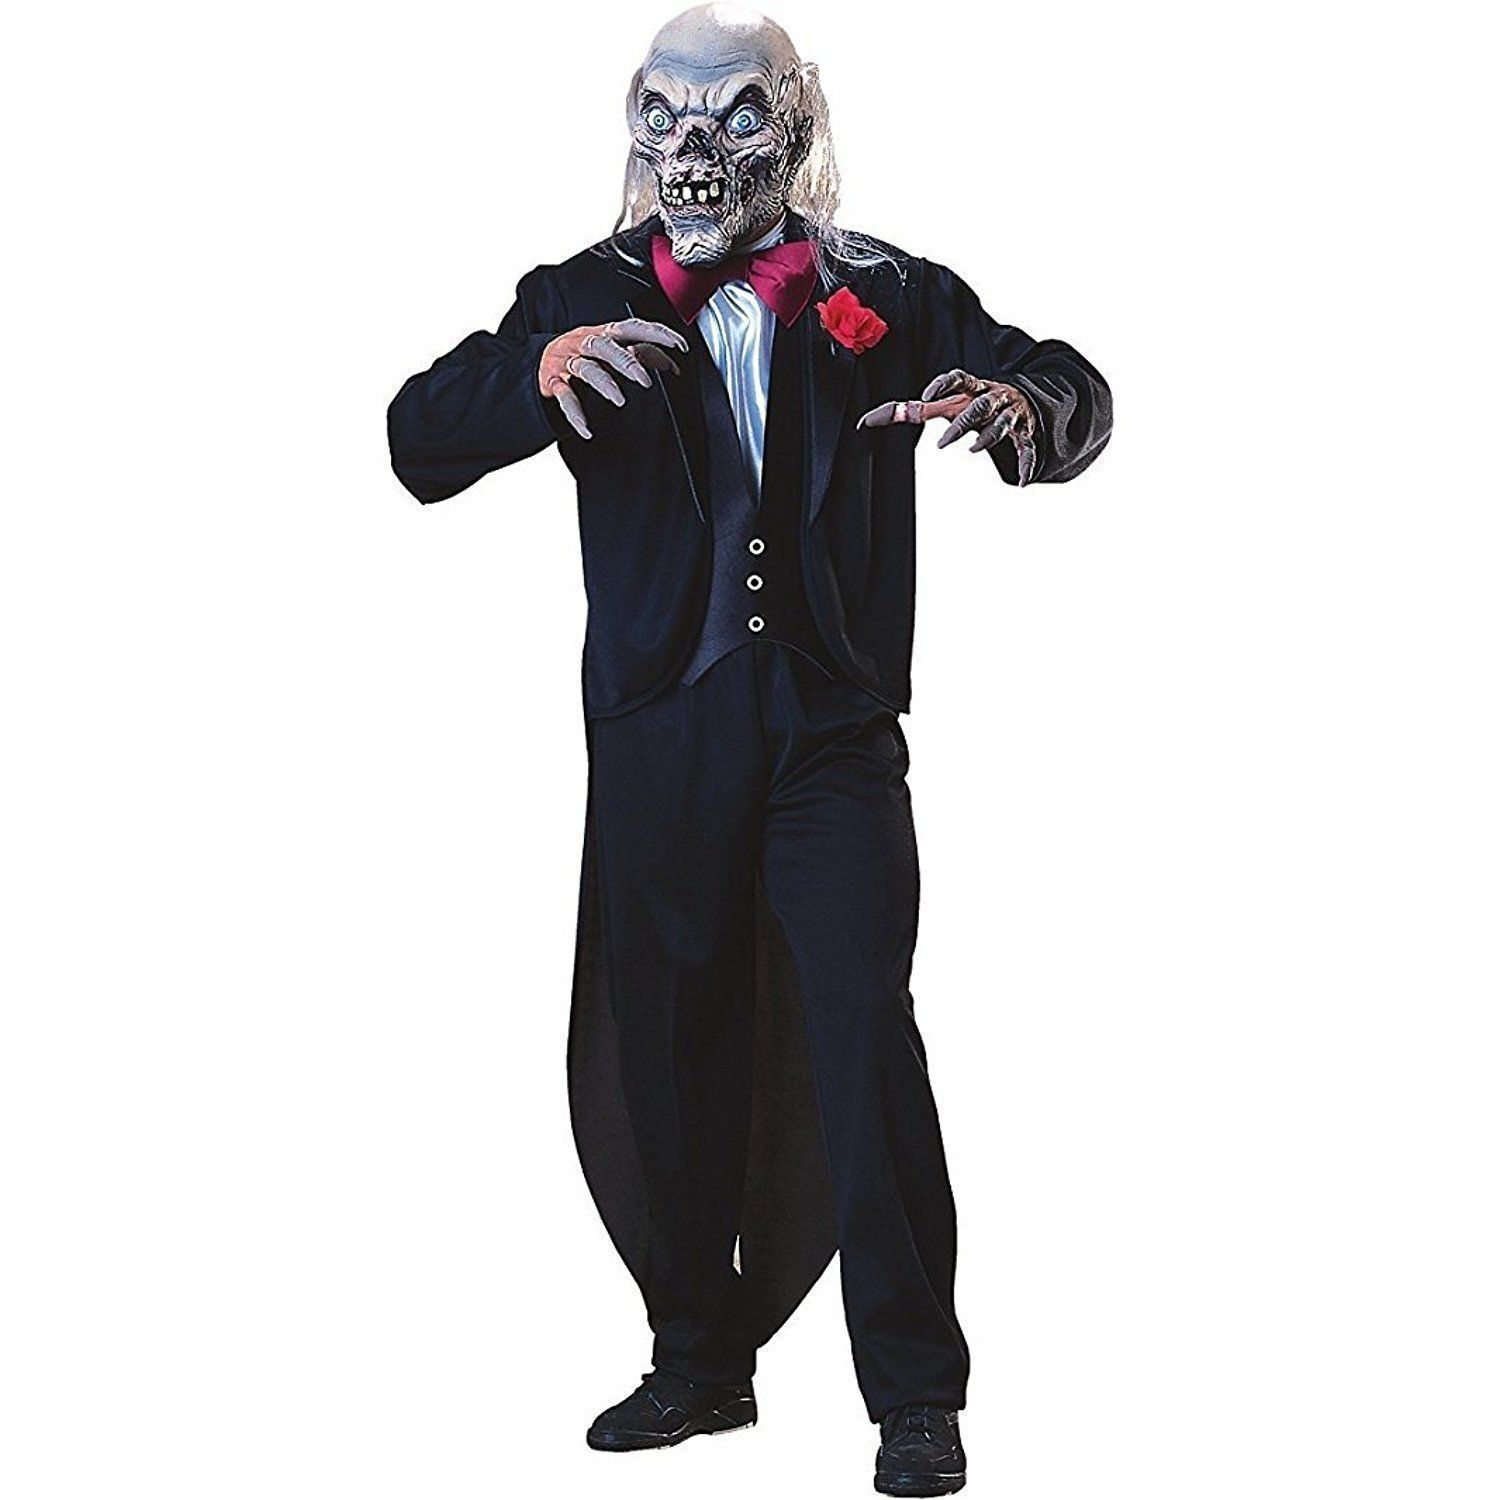 Tales from the Cryptkeeper Tuxedo Adult Halloween Costume Free Shipping image 1